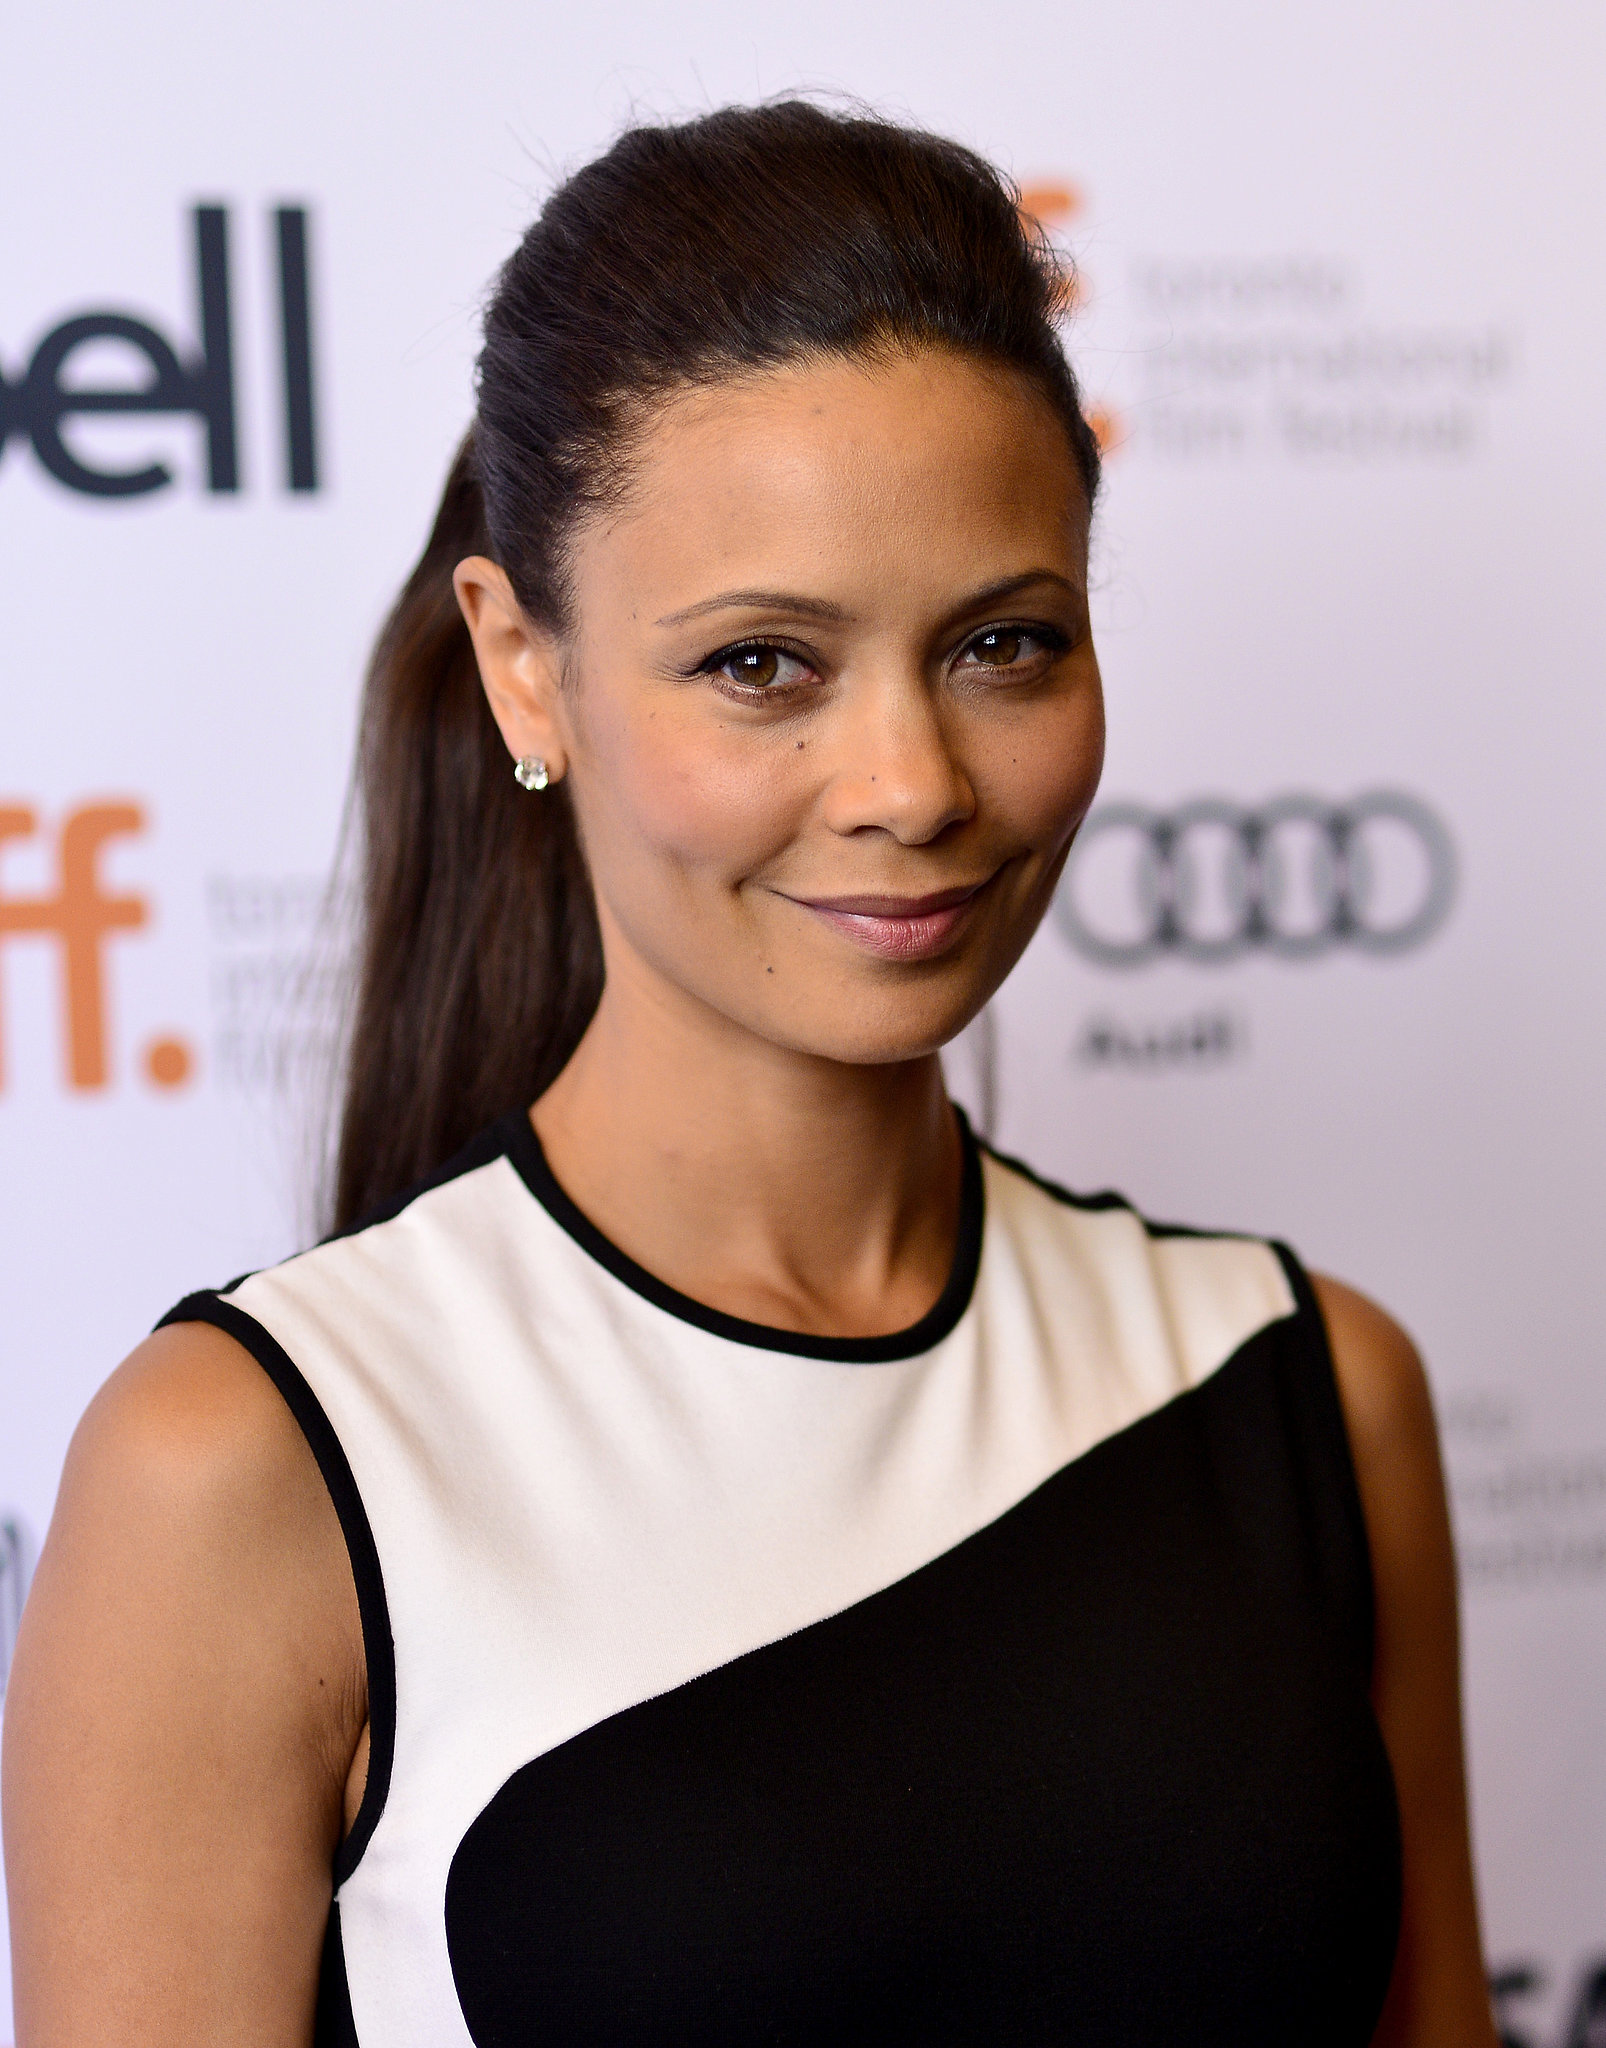 Ponytails can be ultraglamorous, as shown by Thandie Newton at the Half of a Yell